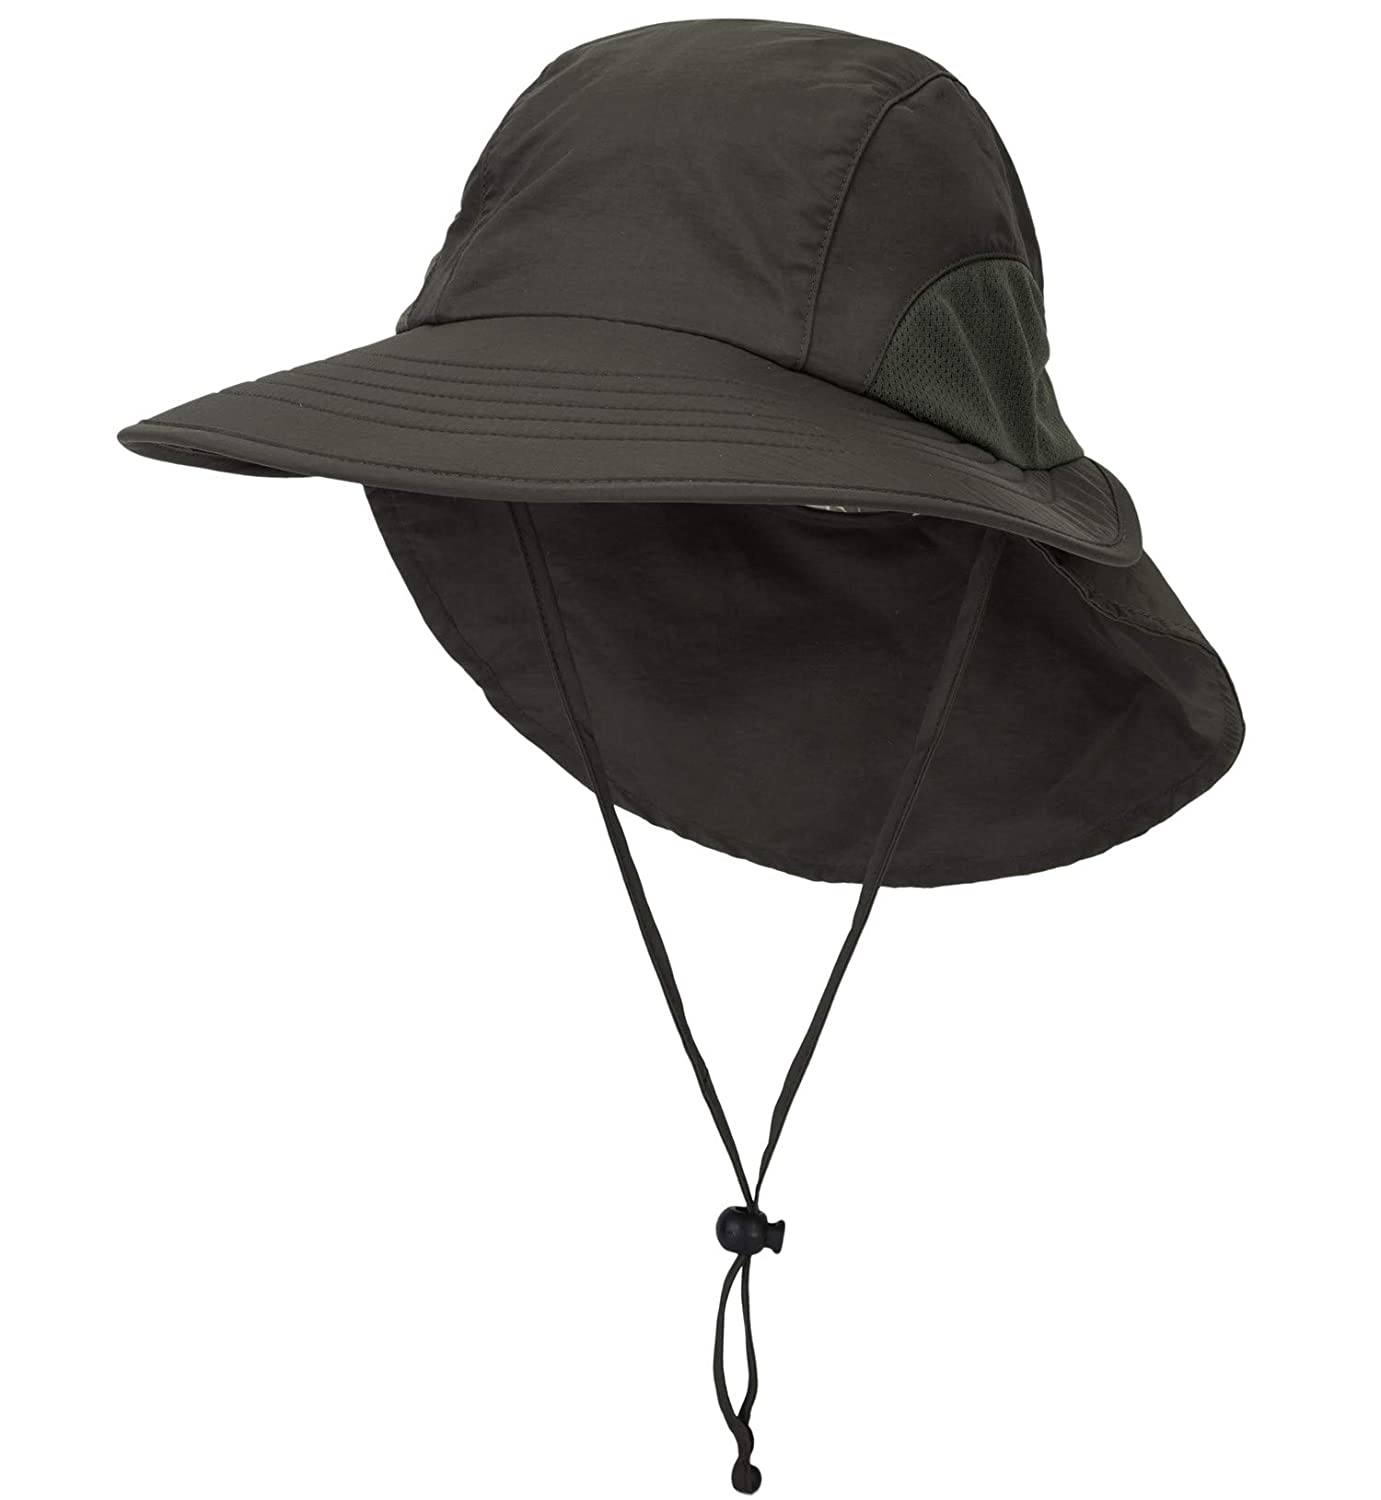 Mesh Sun Hats Connectyle Outdoor Wide Brim Fishing Hat with Neck Flap UPF 50